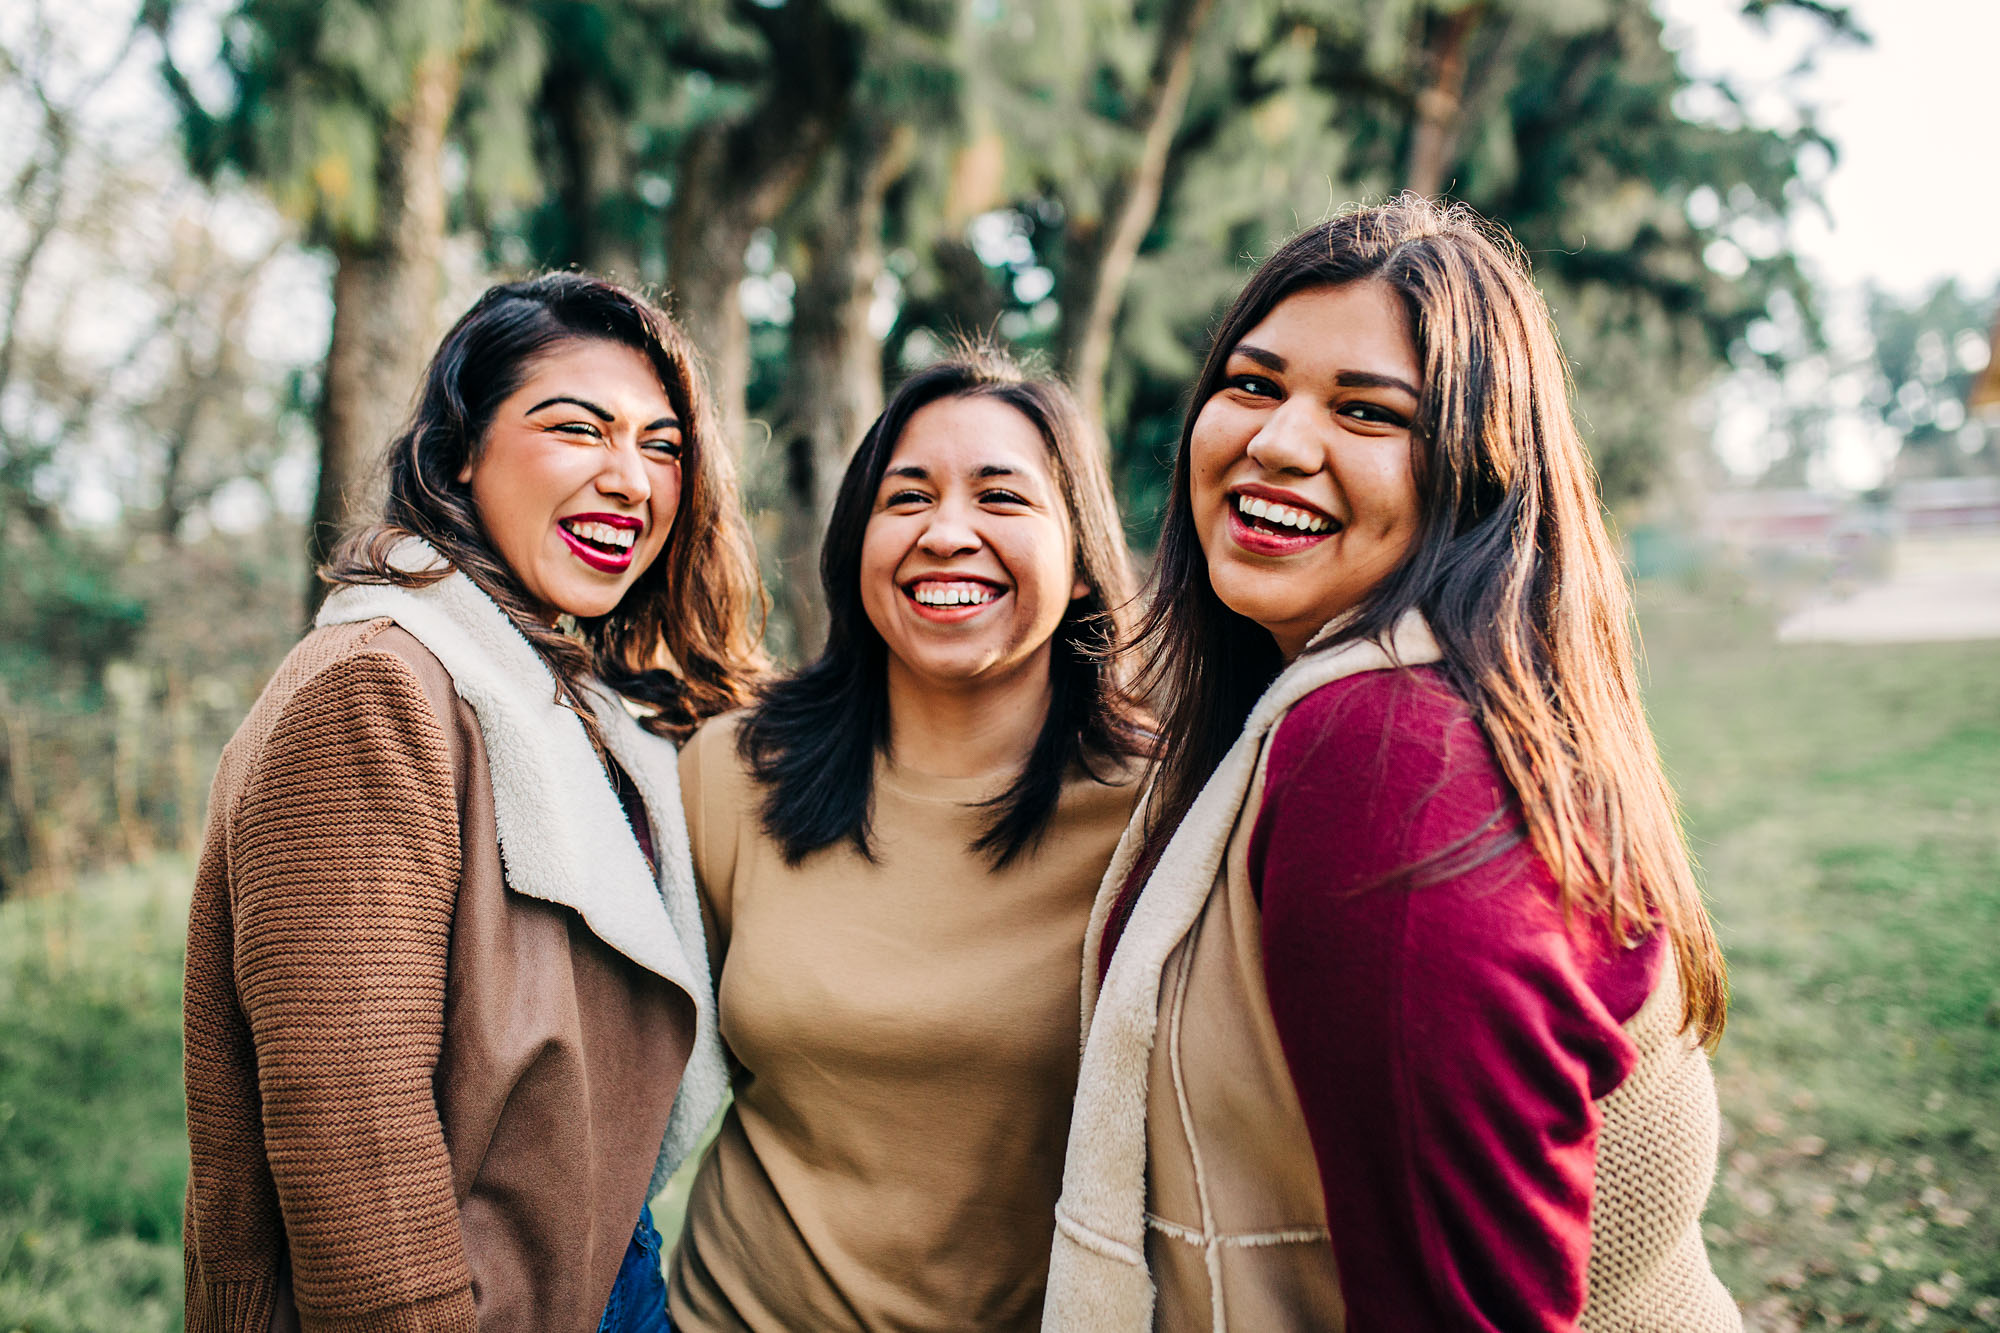 Three sisters put their arms around each other and have fun during a photo session with Amy Wright Photo, a photographer in Roseville, California.